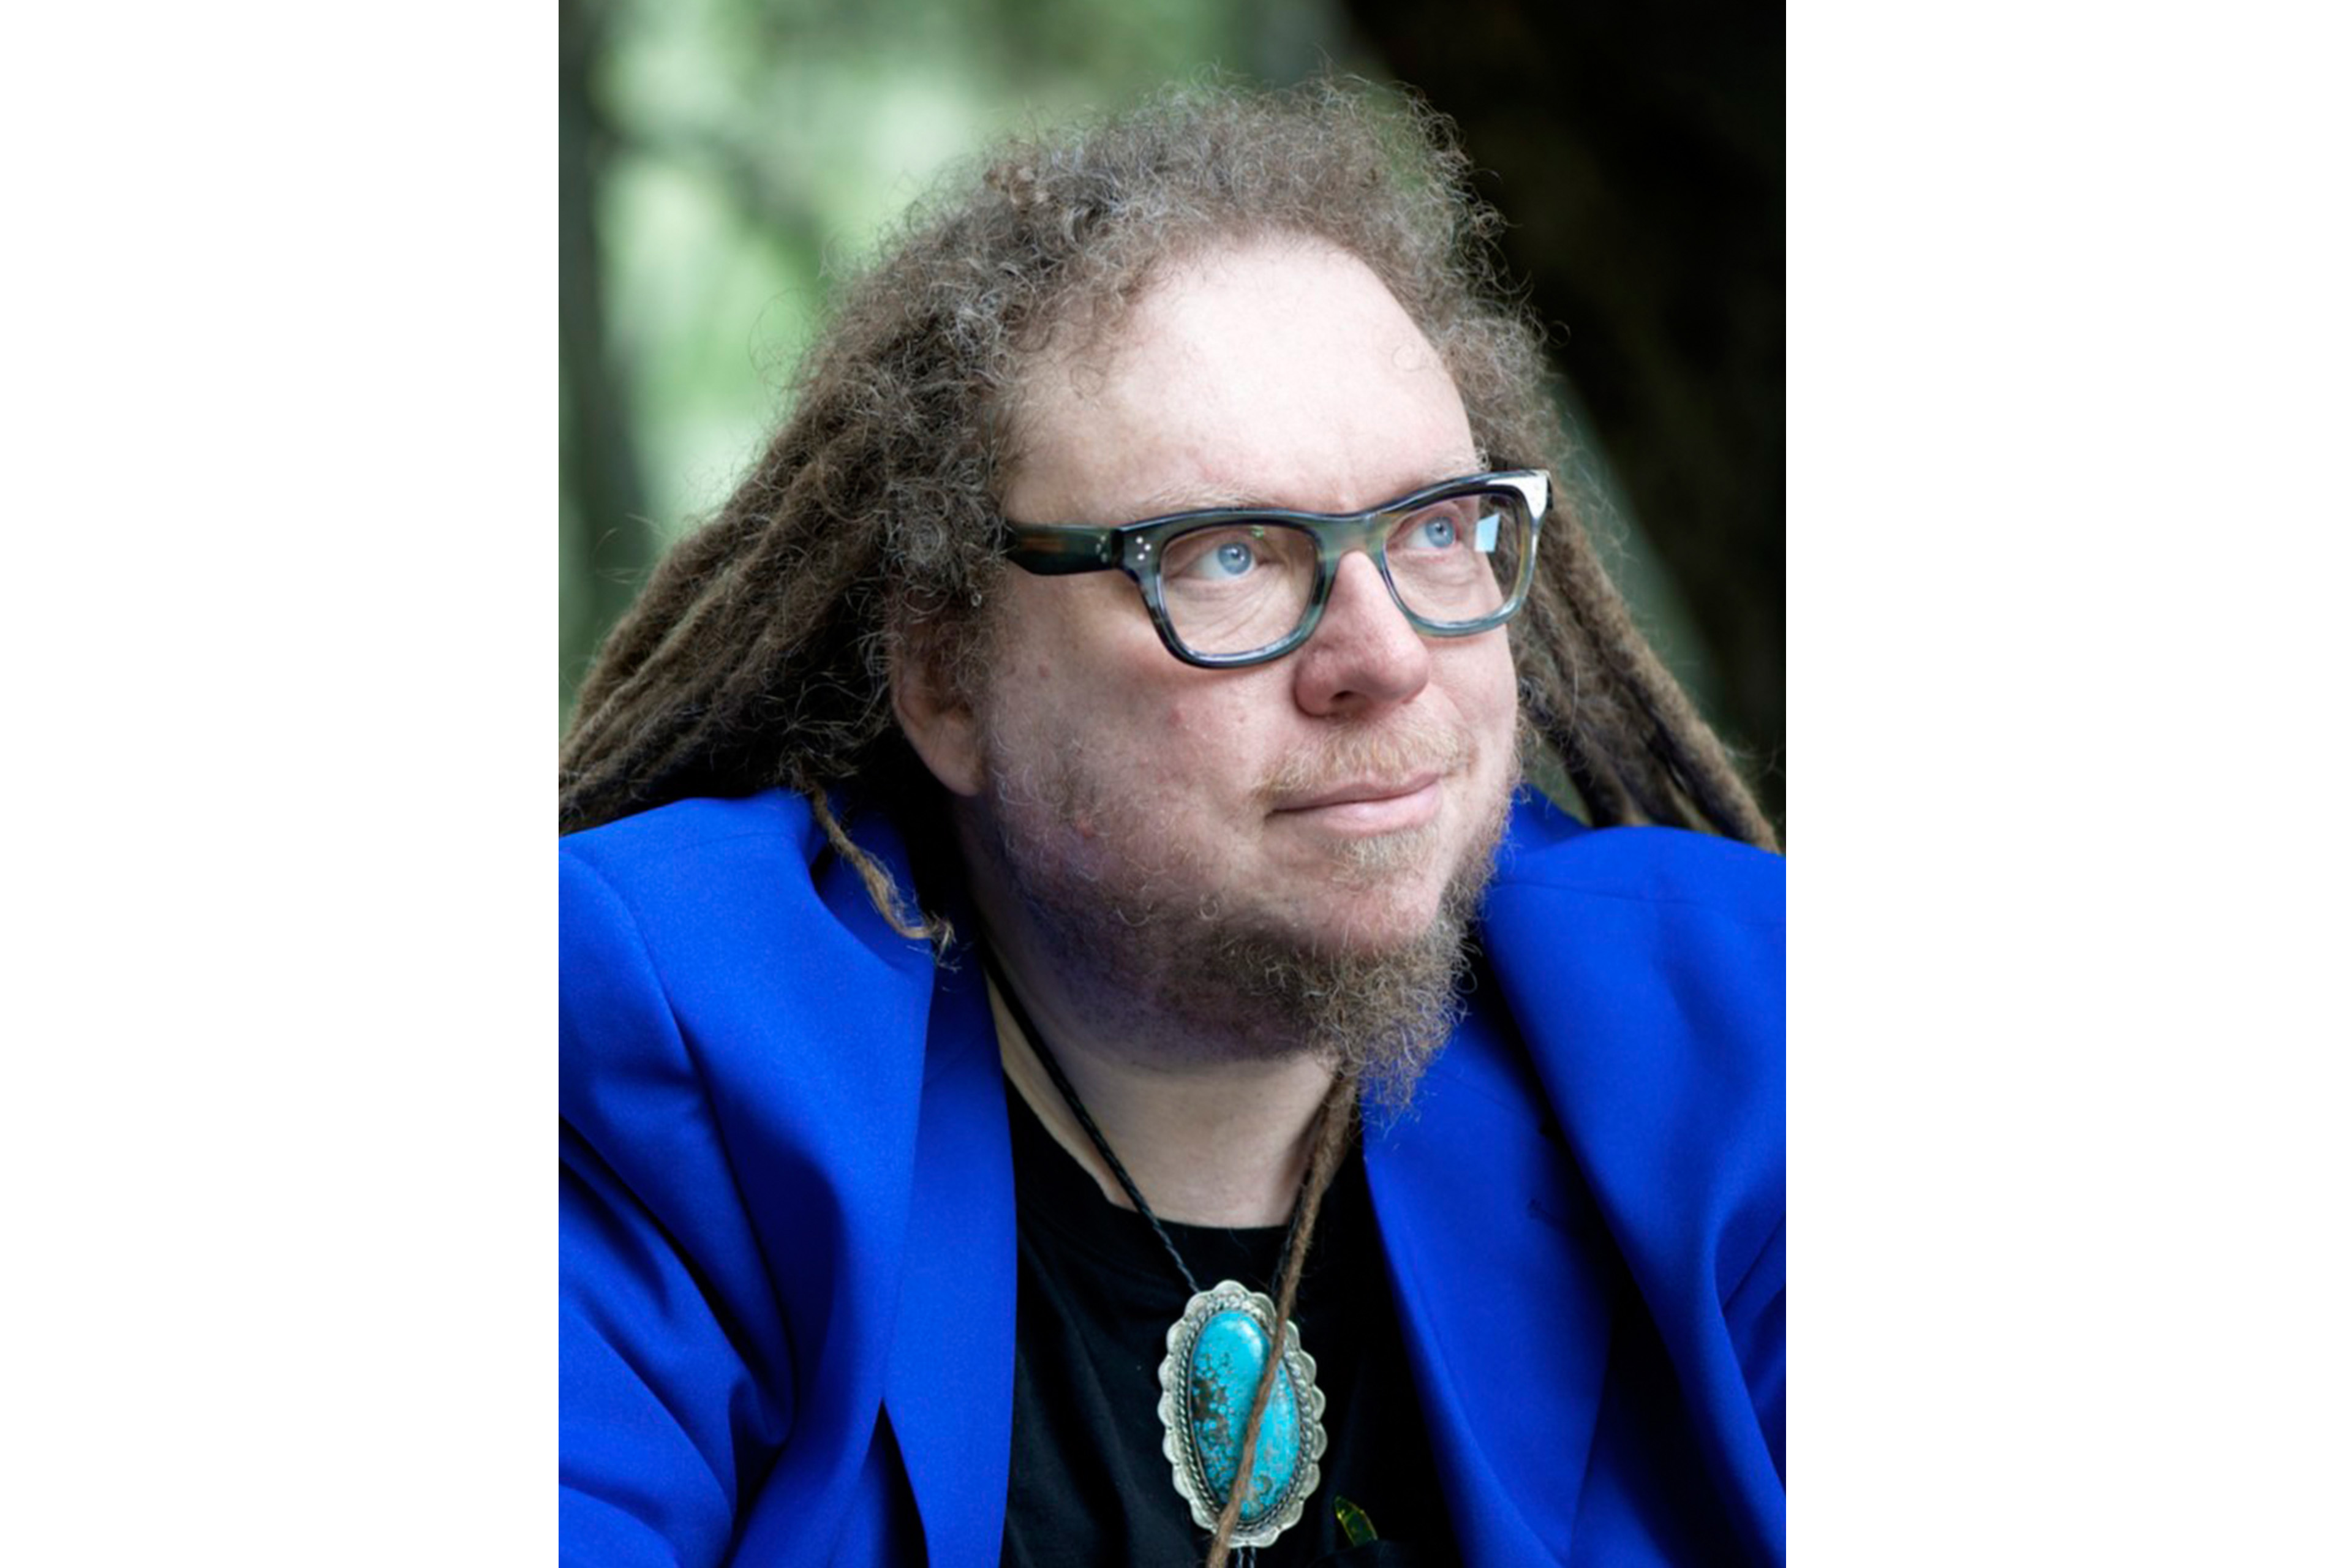 A photographic portrait of Jaron Lanier